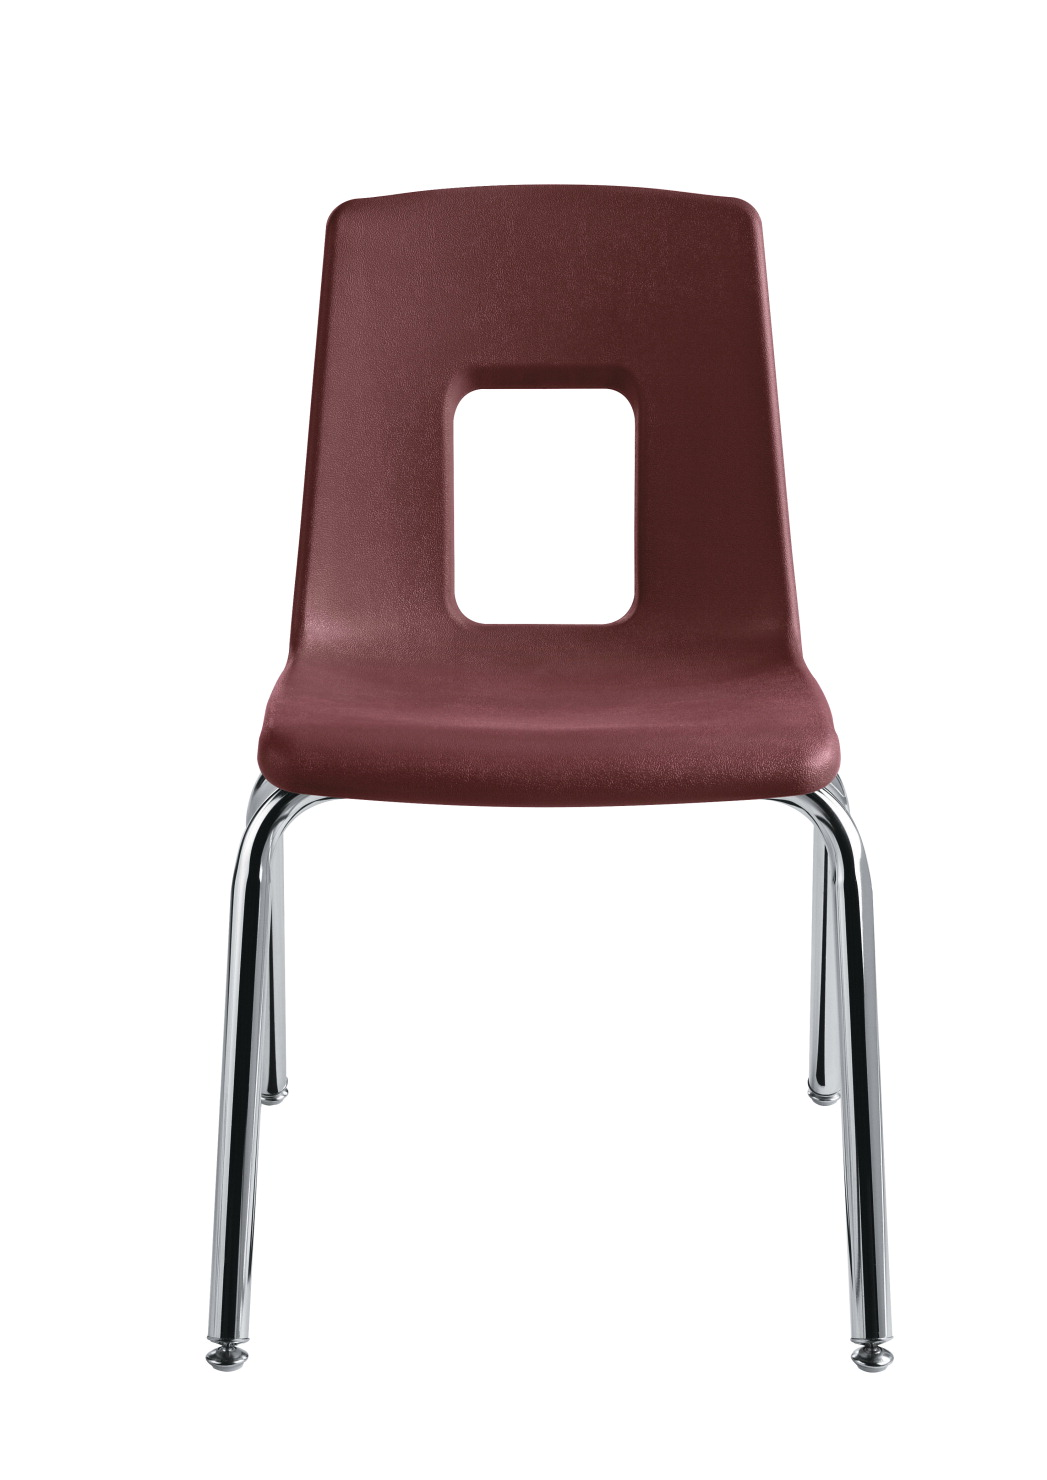 Classroom Select Traditional Chair 17 1 2 Inch Seat Chrome Frame